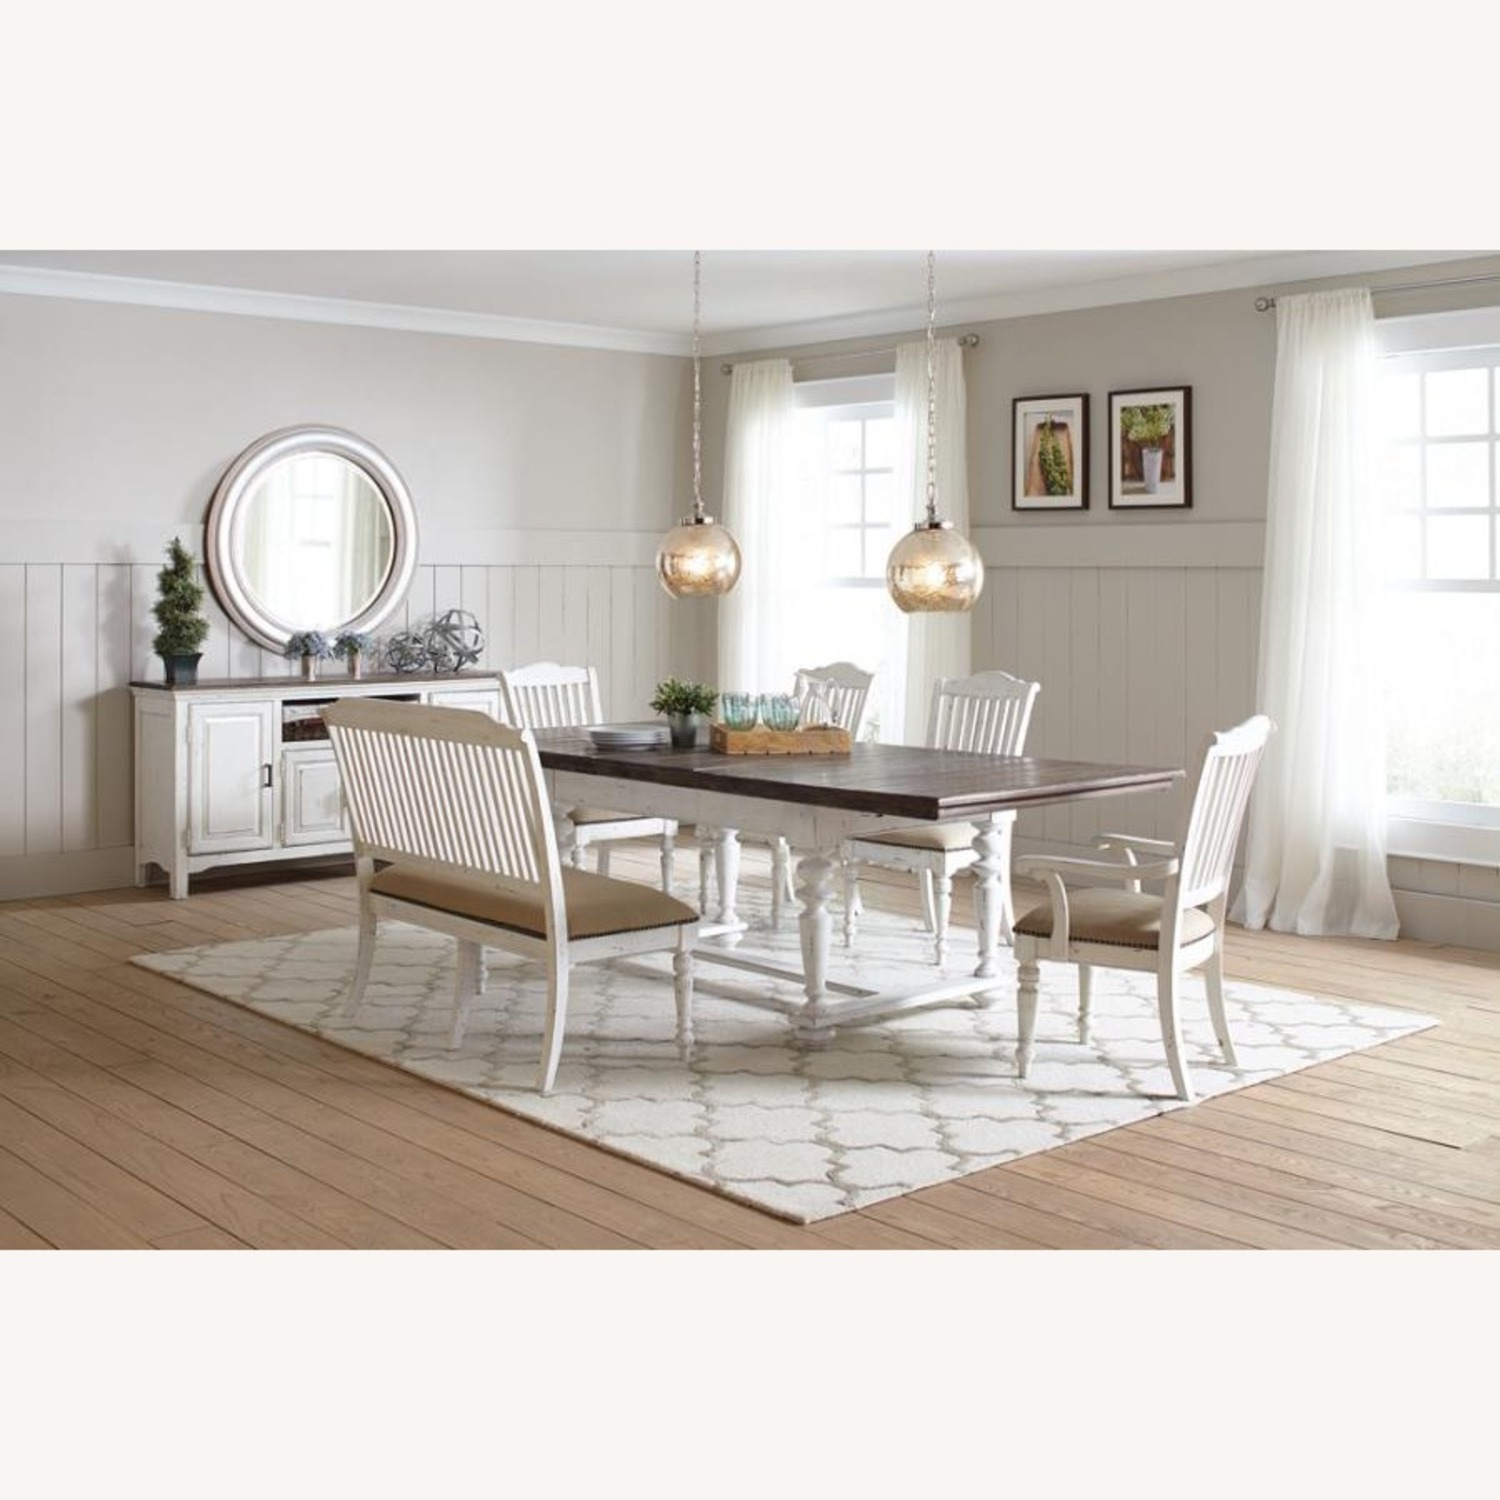 Bench In White Finish W/ Stick-Back Seating - image-7